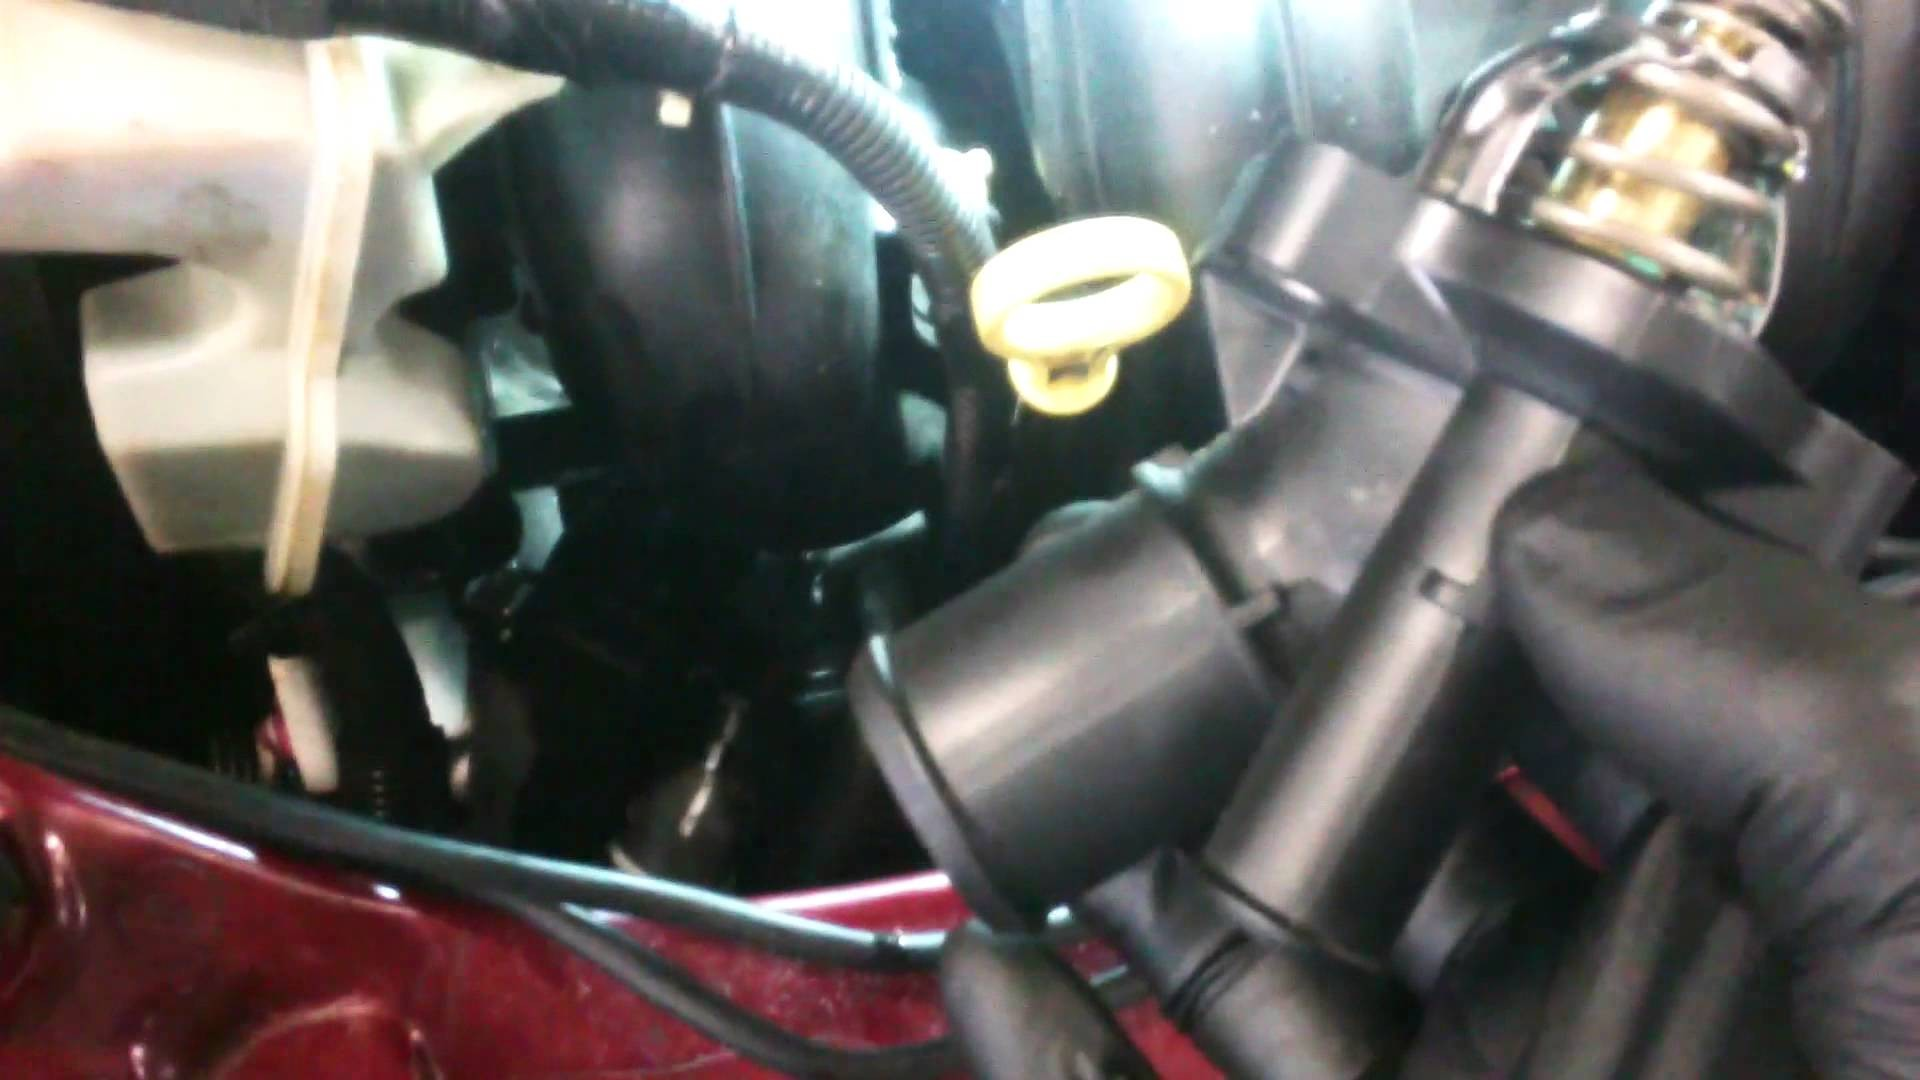 Diagram Of Car thermostat thermostat Replacement 2005 2011 ford Focus 2 0l assembly Install Of Diagram Of Car thermostat